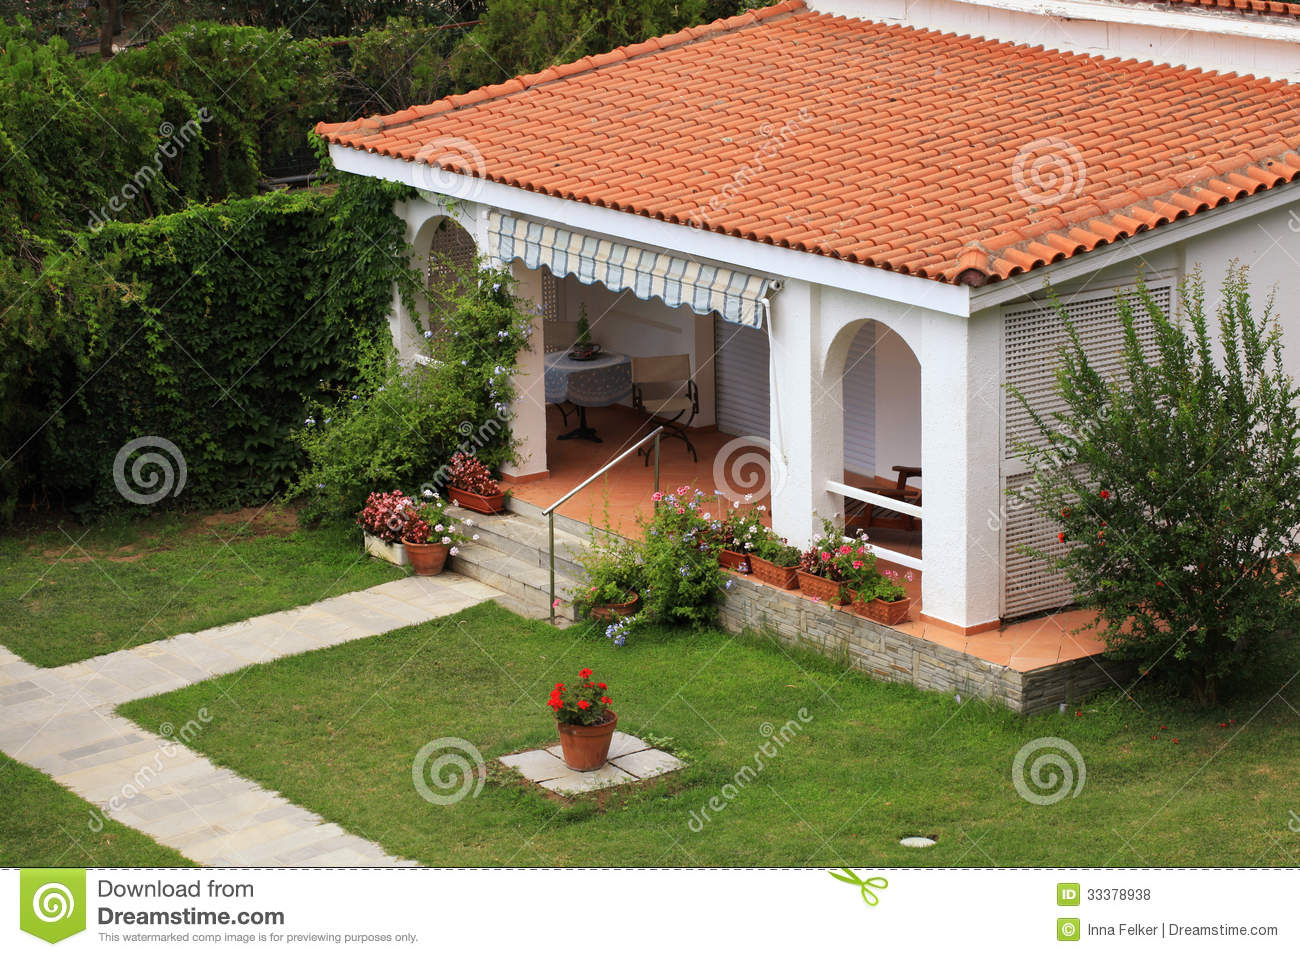 Beautiful White House With Small Terrace In The Garden.